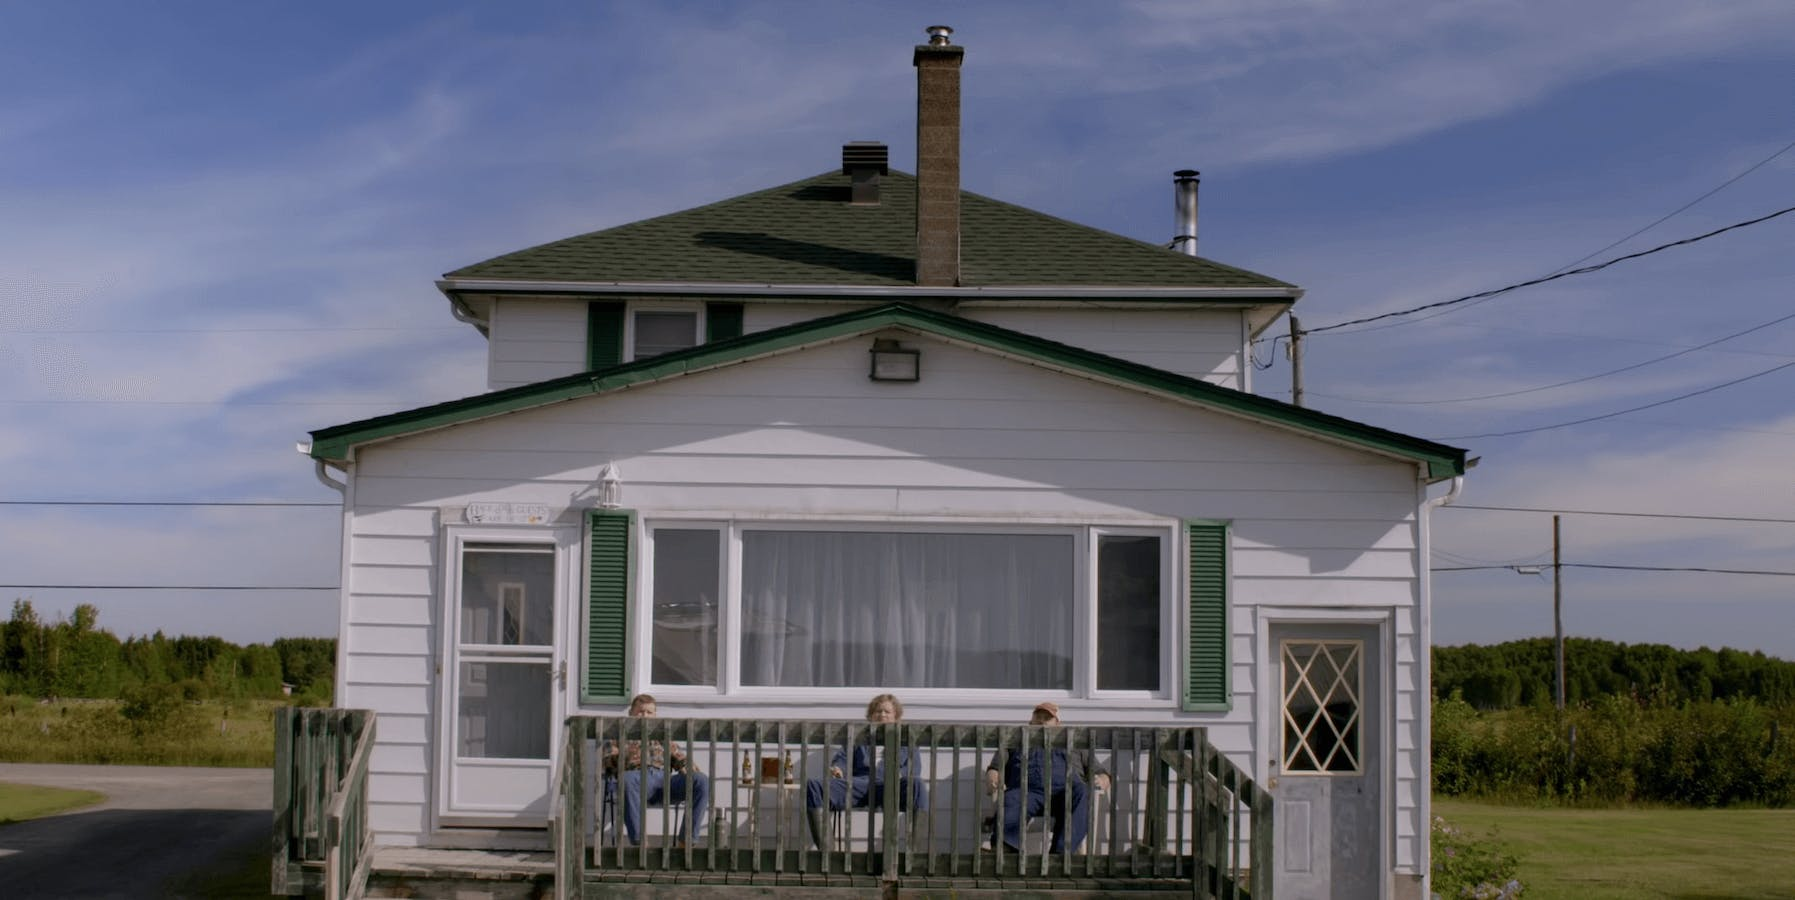 hulu letterkenny reason 8 review featured